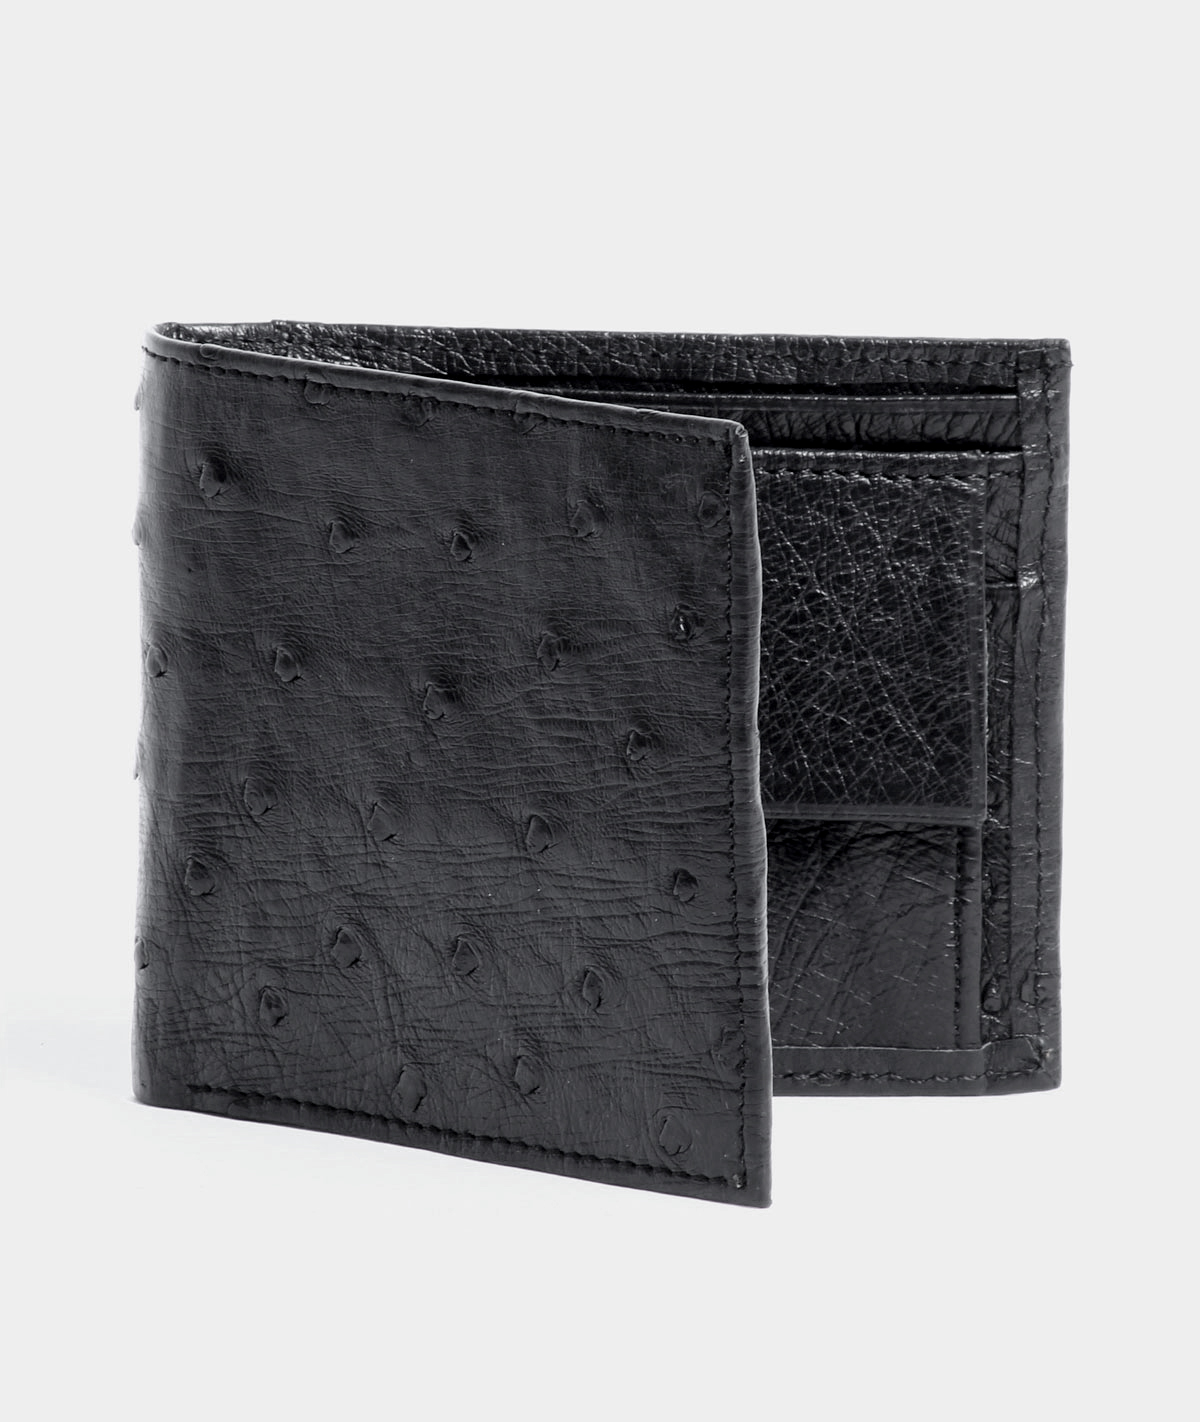 MENS WALLET IN BLACK